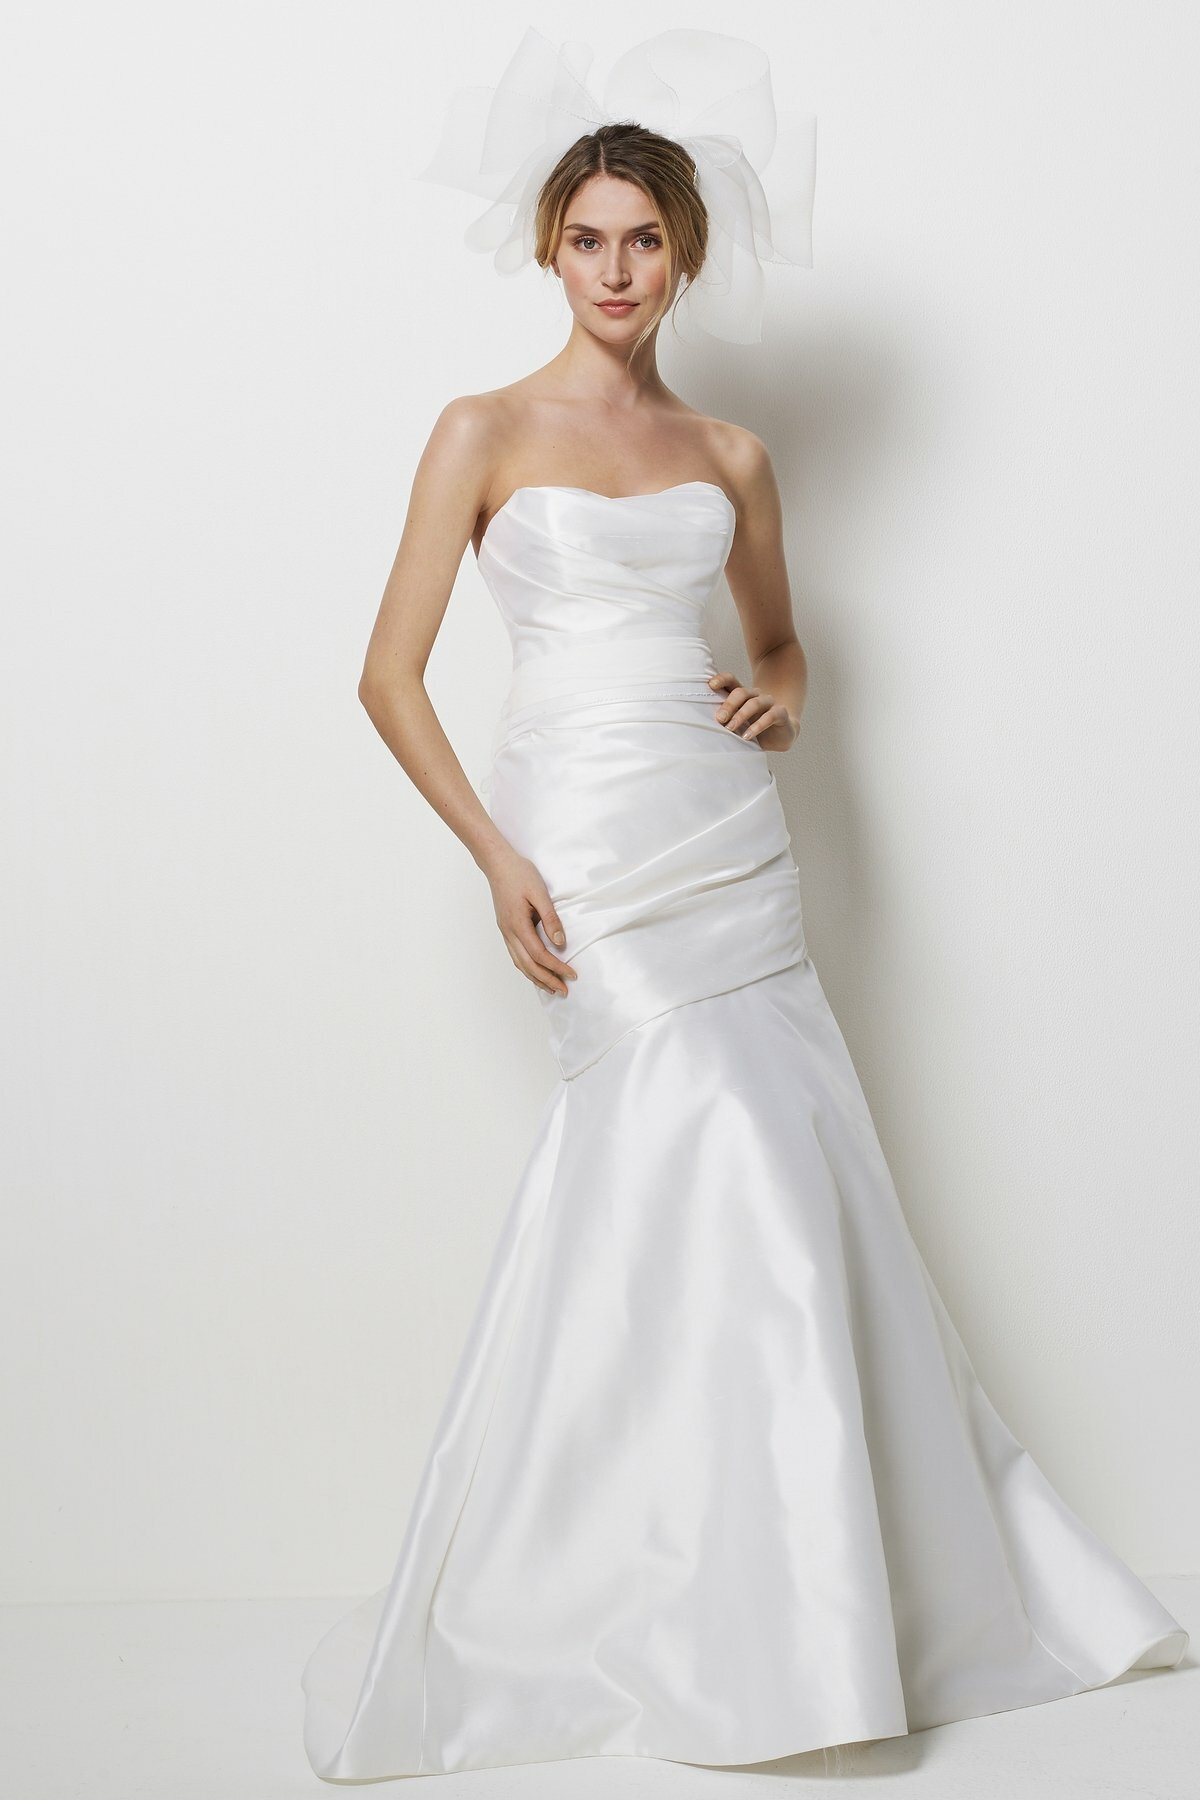 white silk wedding dresses photo 3 browse pictures and On white silk wedding dresses